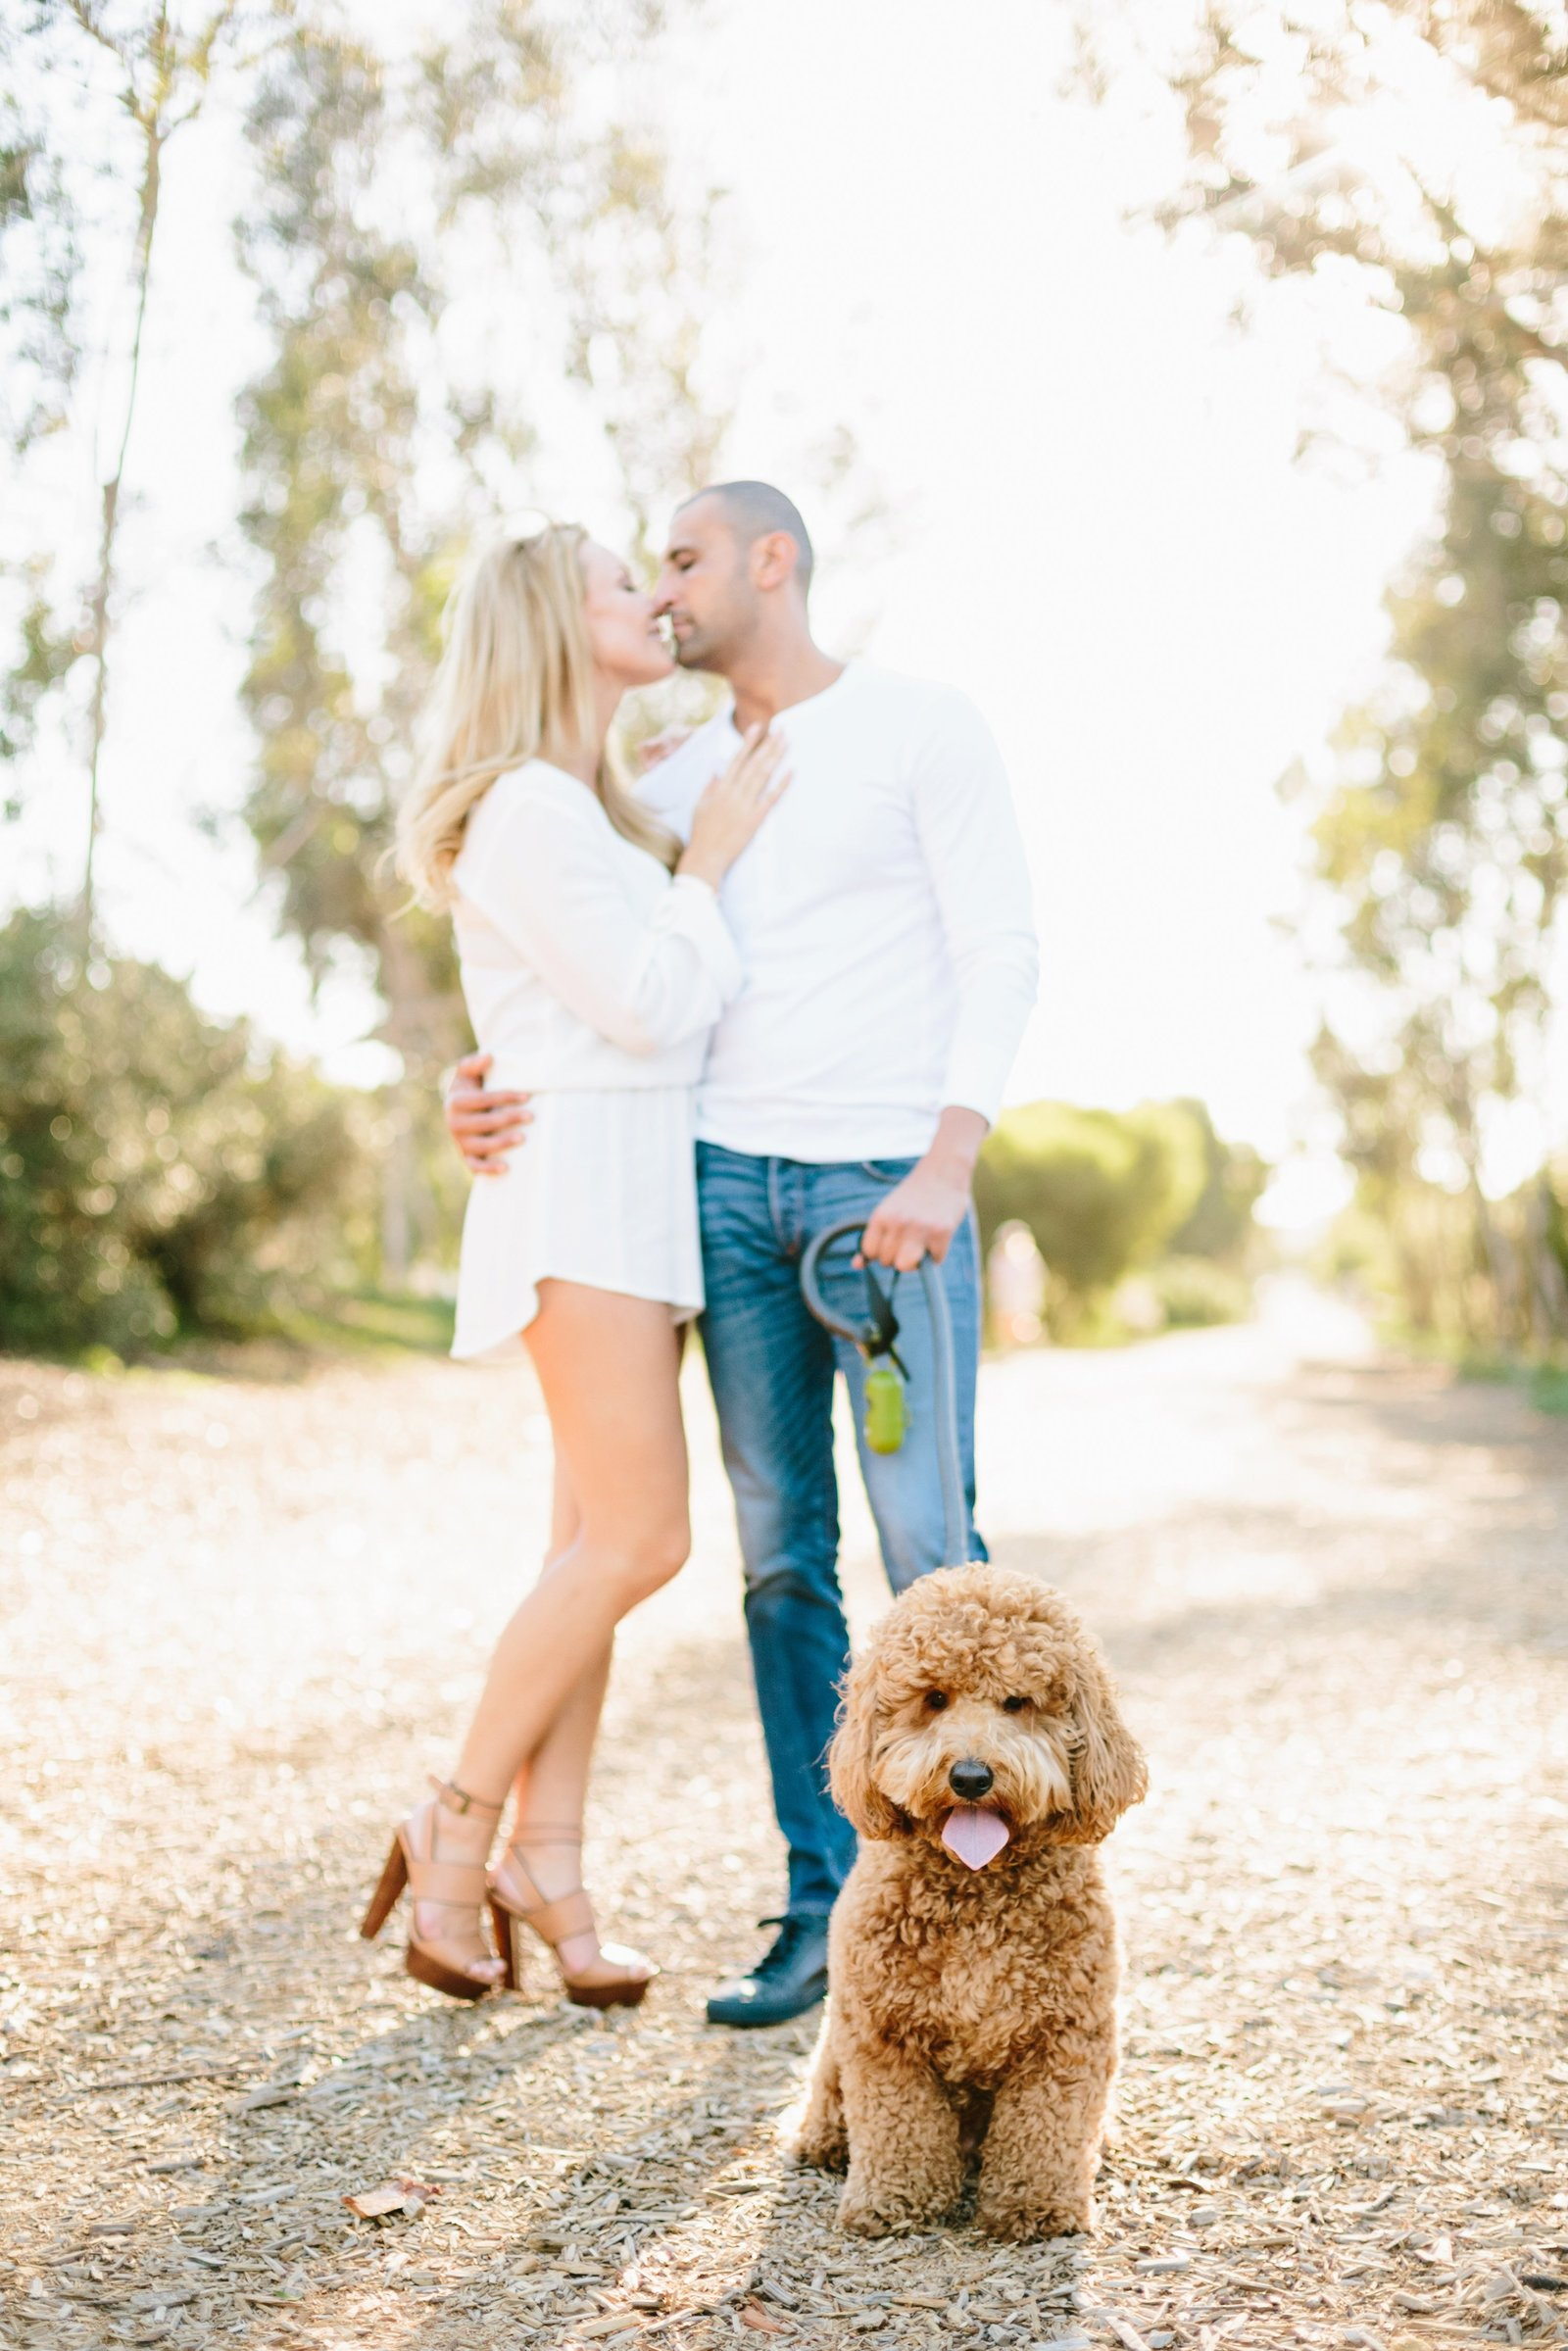 Engagement Photos-Jodee Debes Photography-051